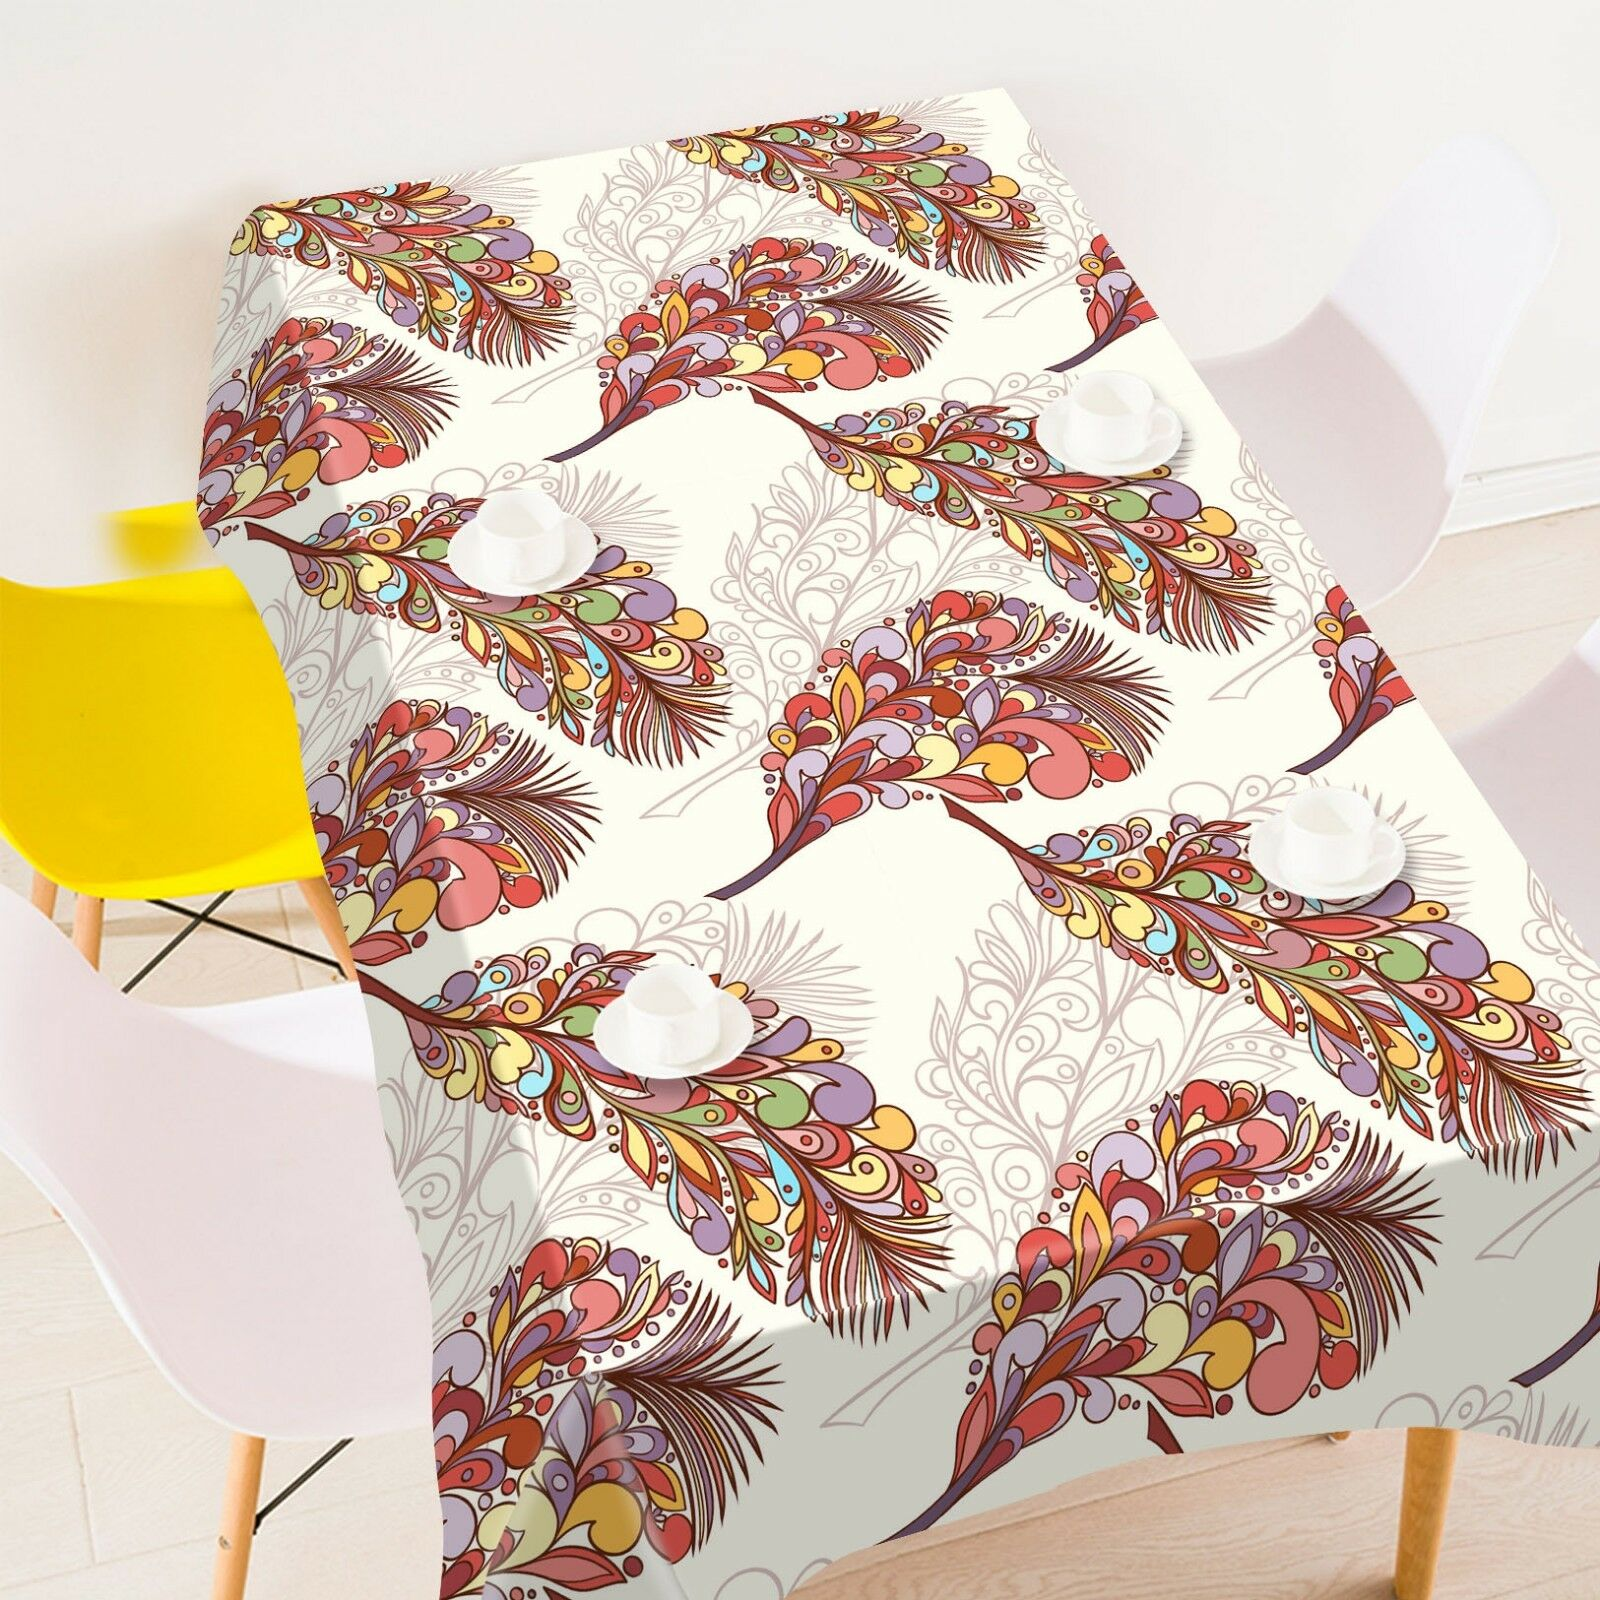 3D Couleur Feather 128 Tablecloth Table Cover Cloth Birthday Party Event AJ Summer